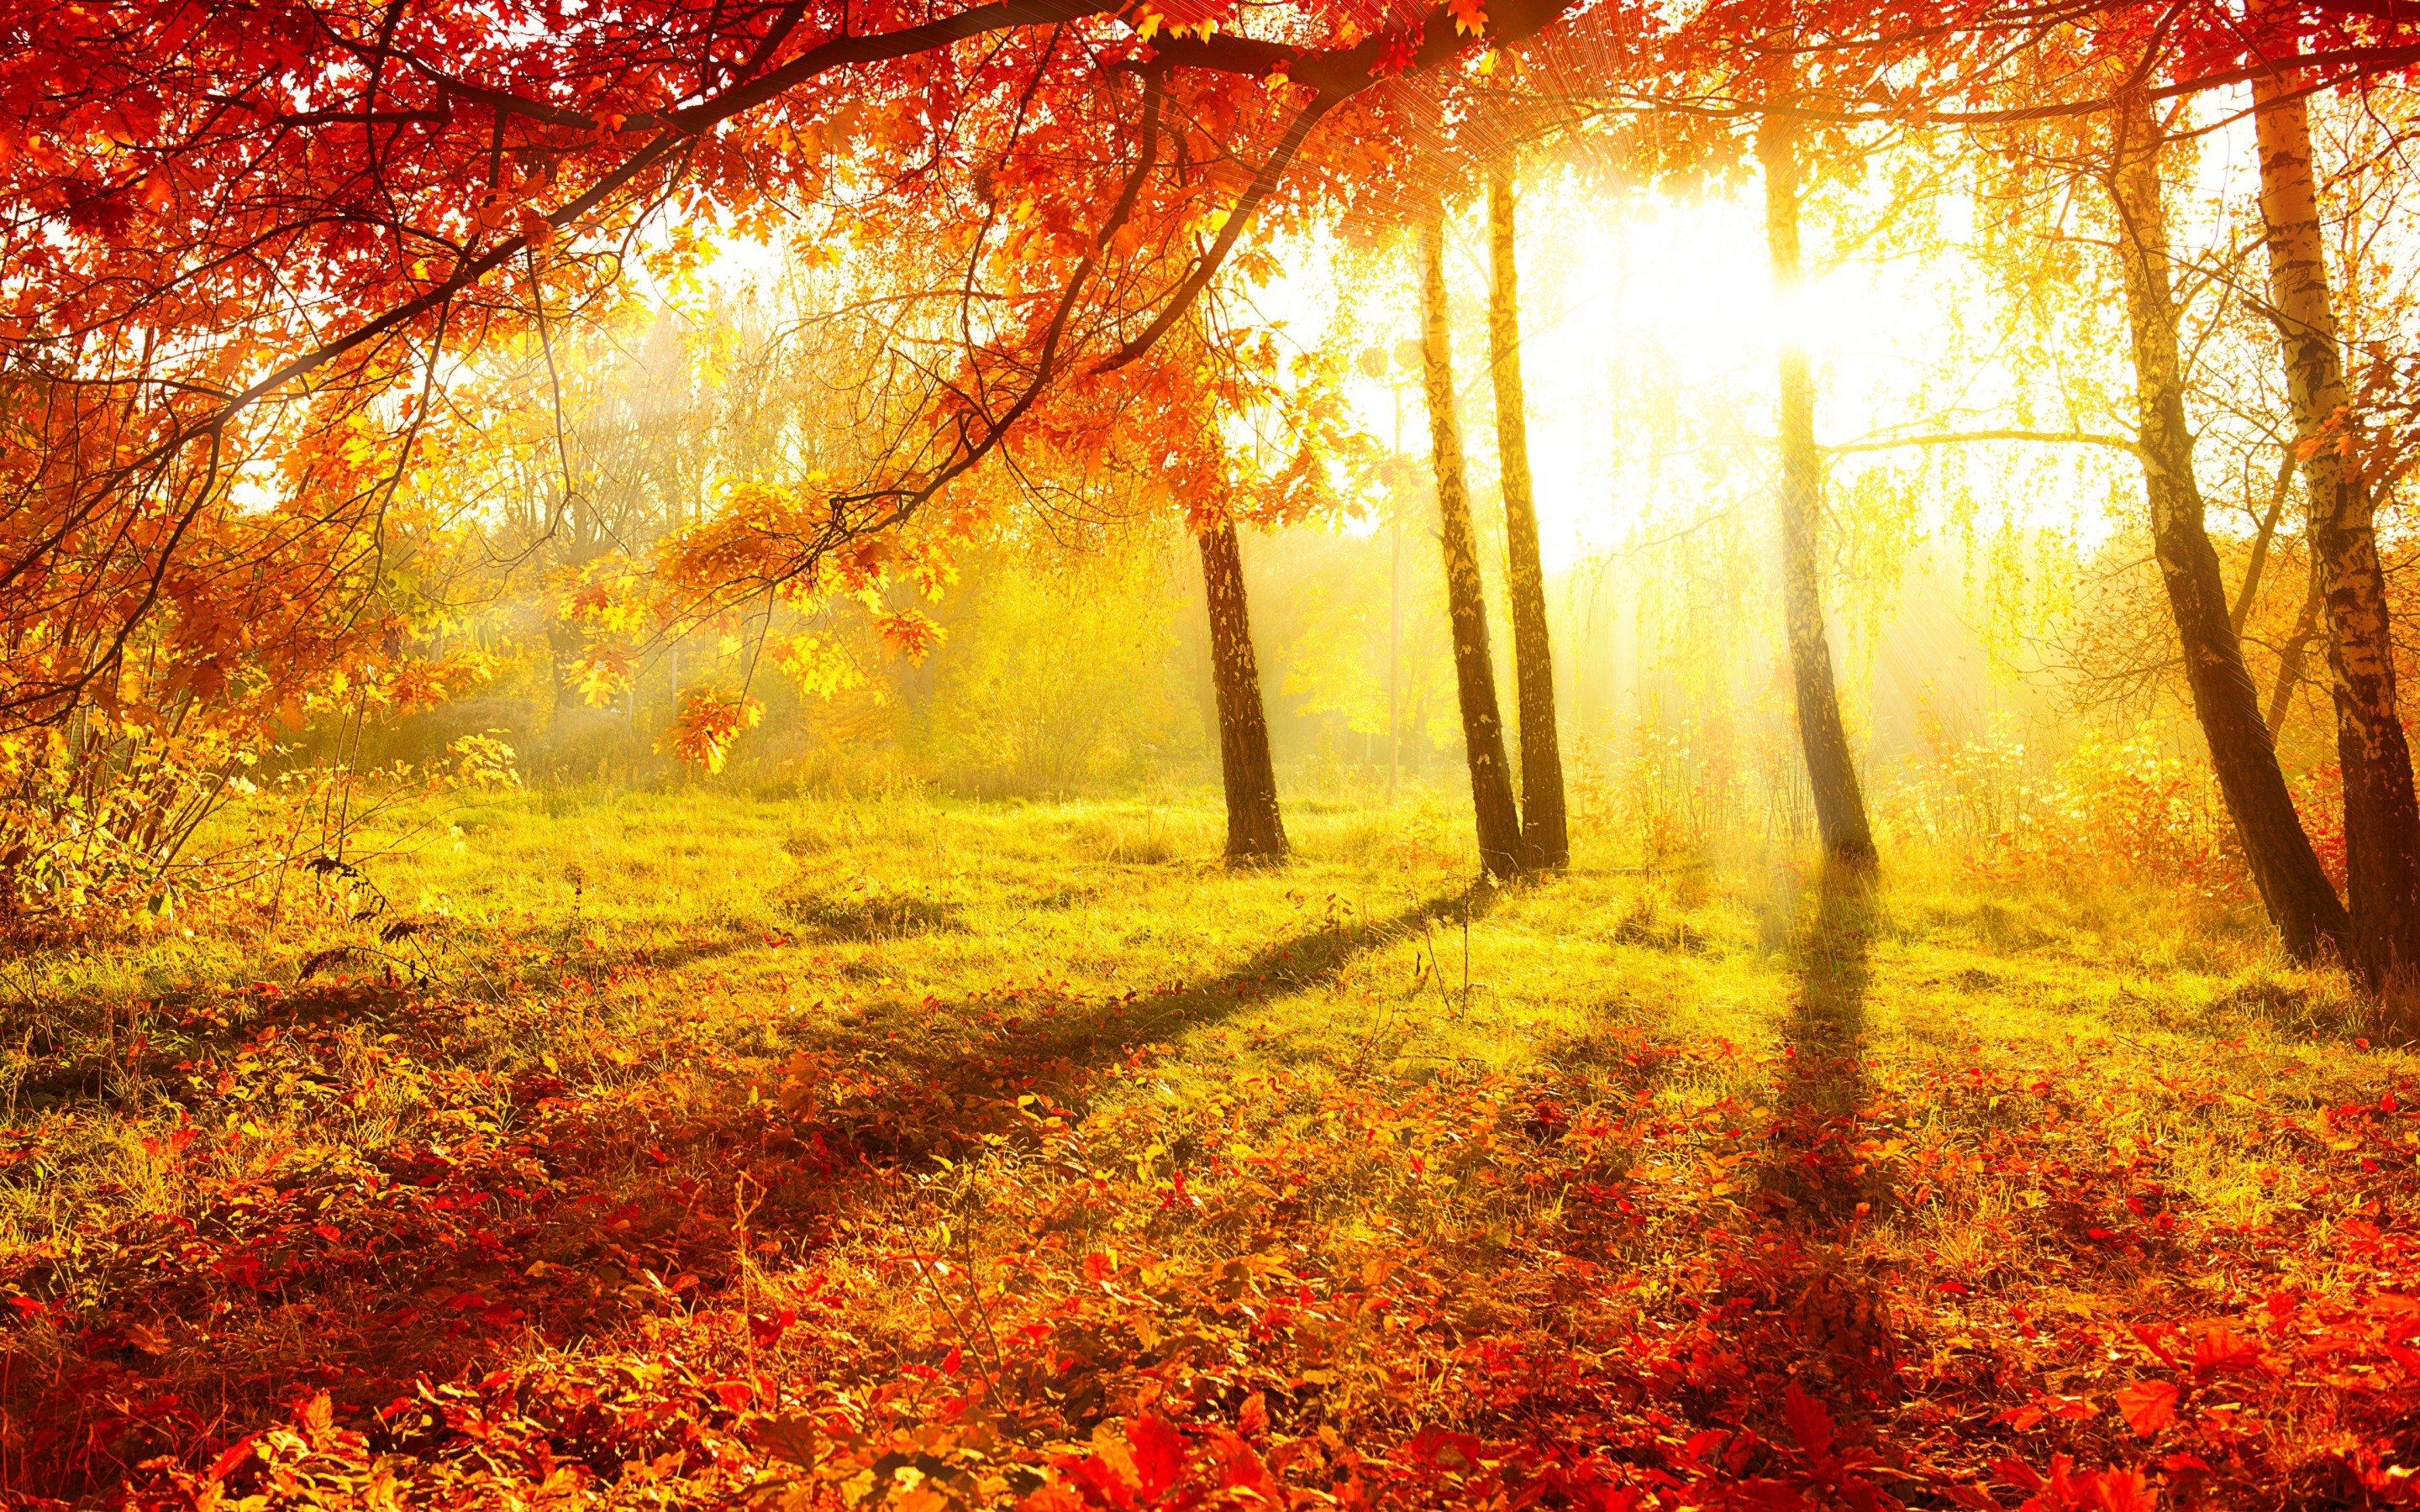 HQ Definition Autumn Forest Wallpapers, High Quality, BsnSCB